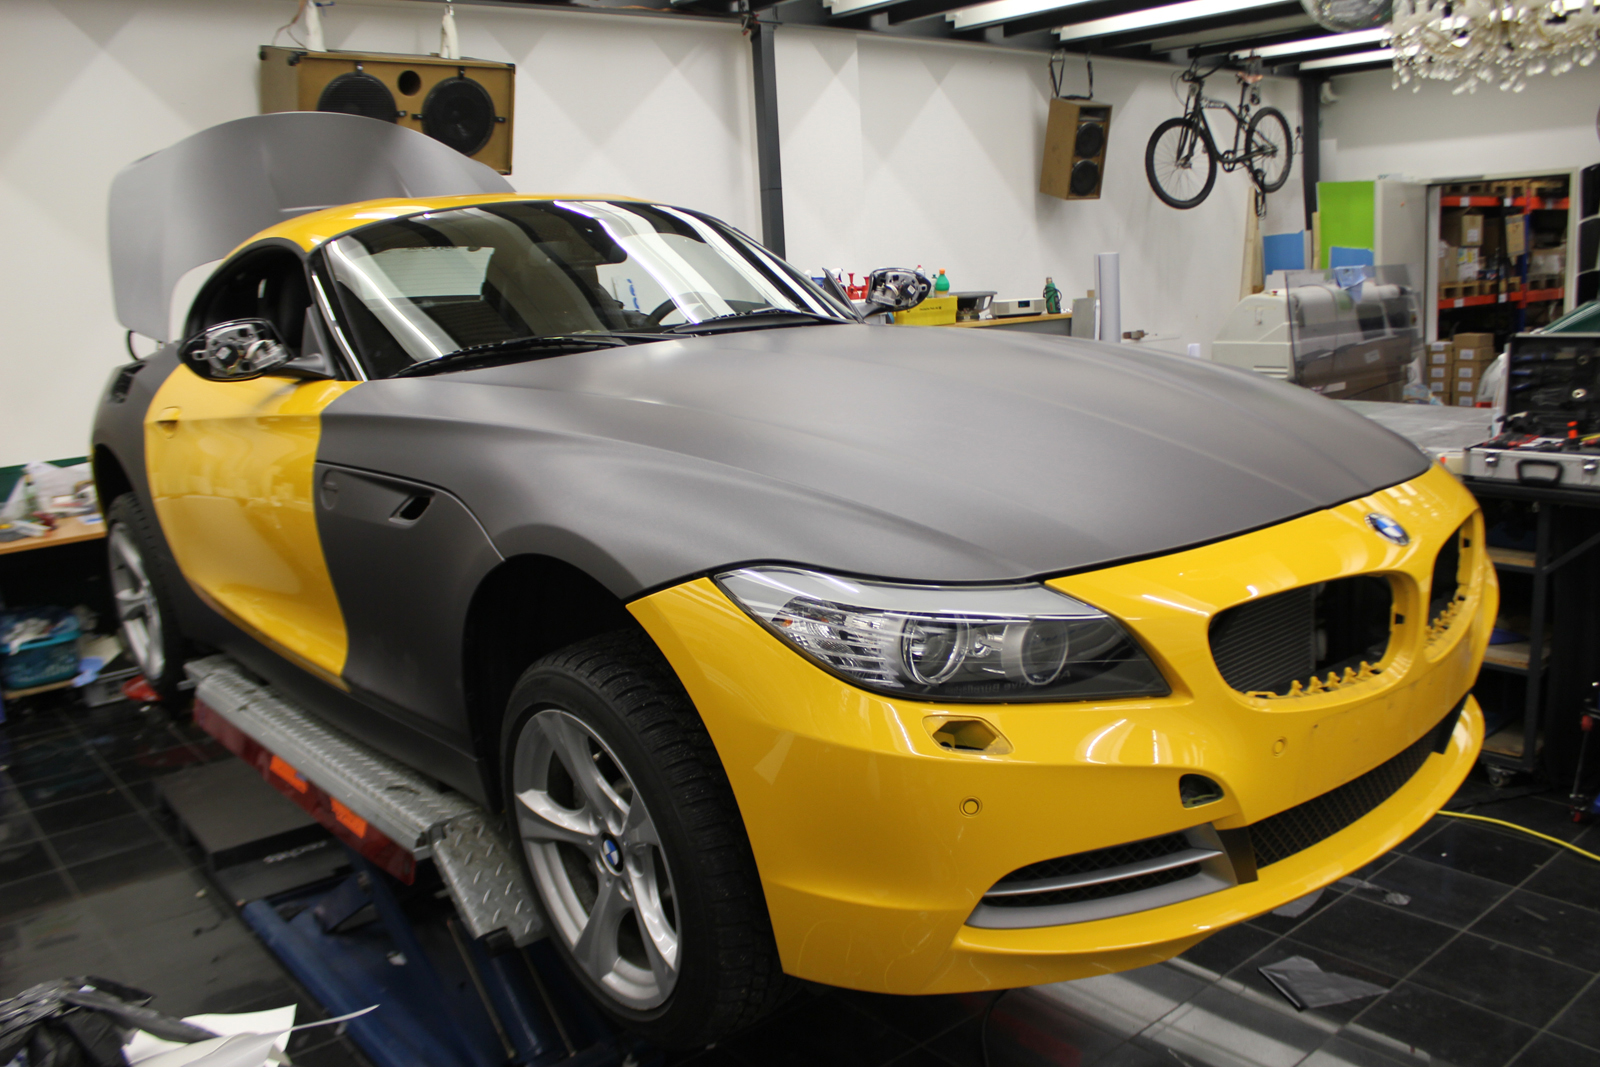 BMW_Z4_FOLIERUNG_ANTHRAZIT_METALLIC_MATT_01